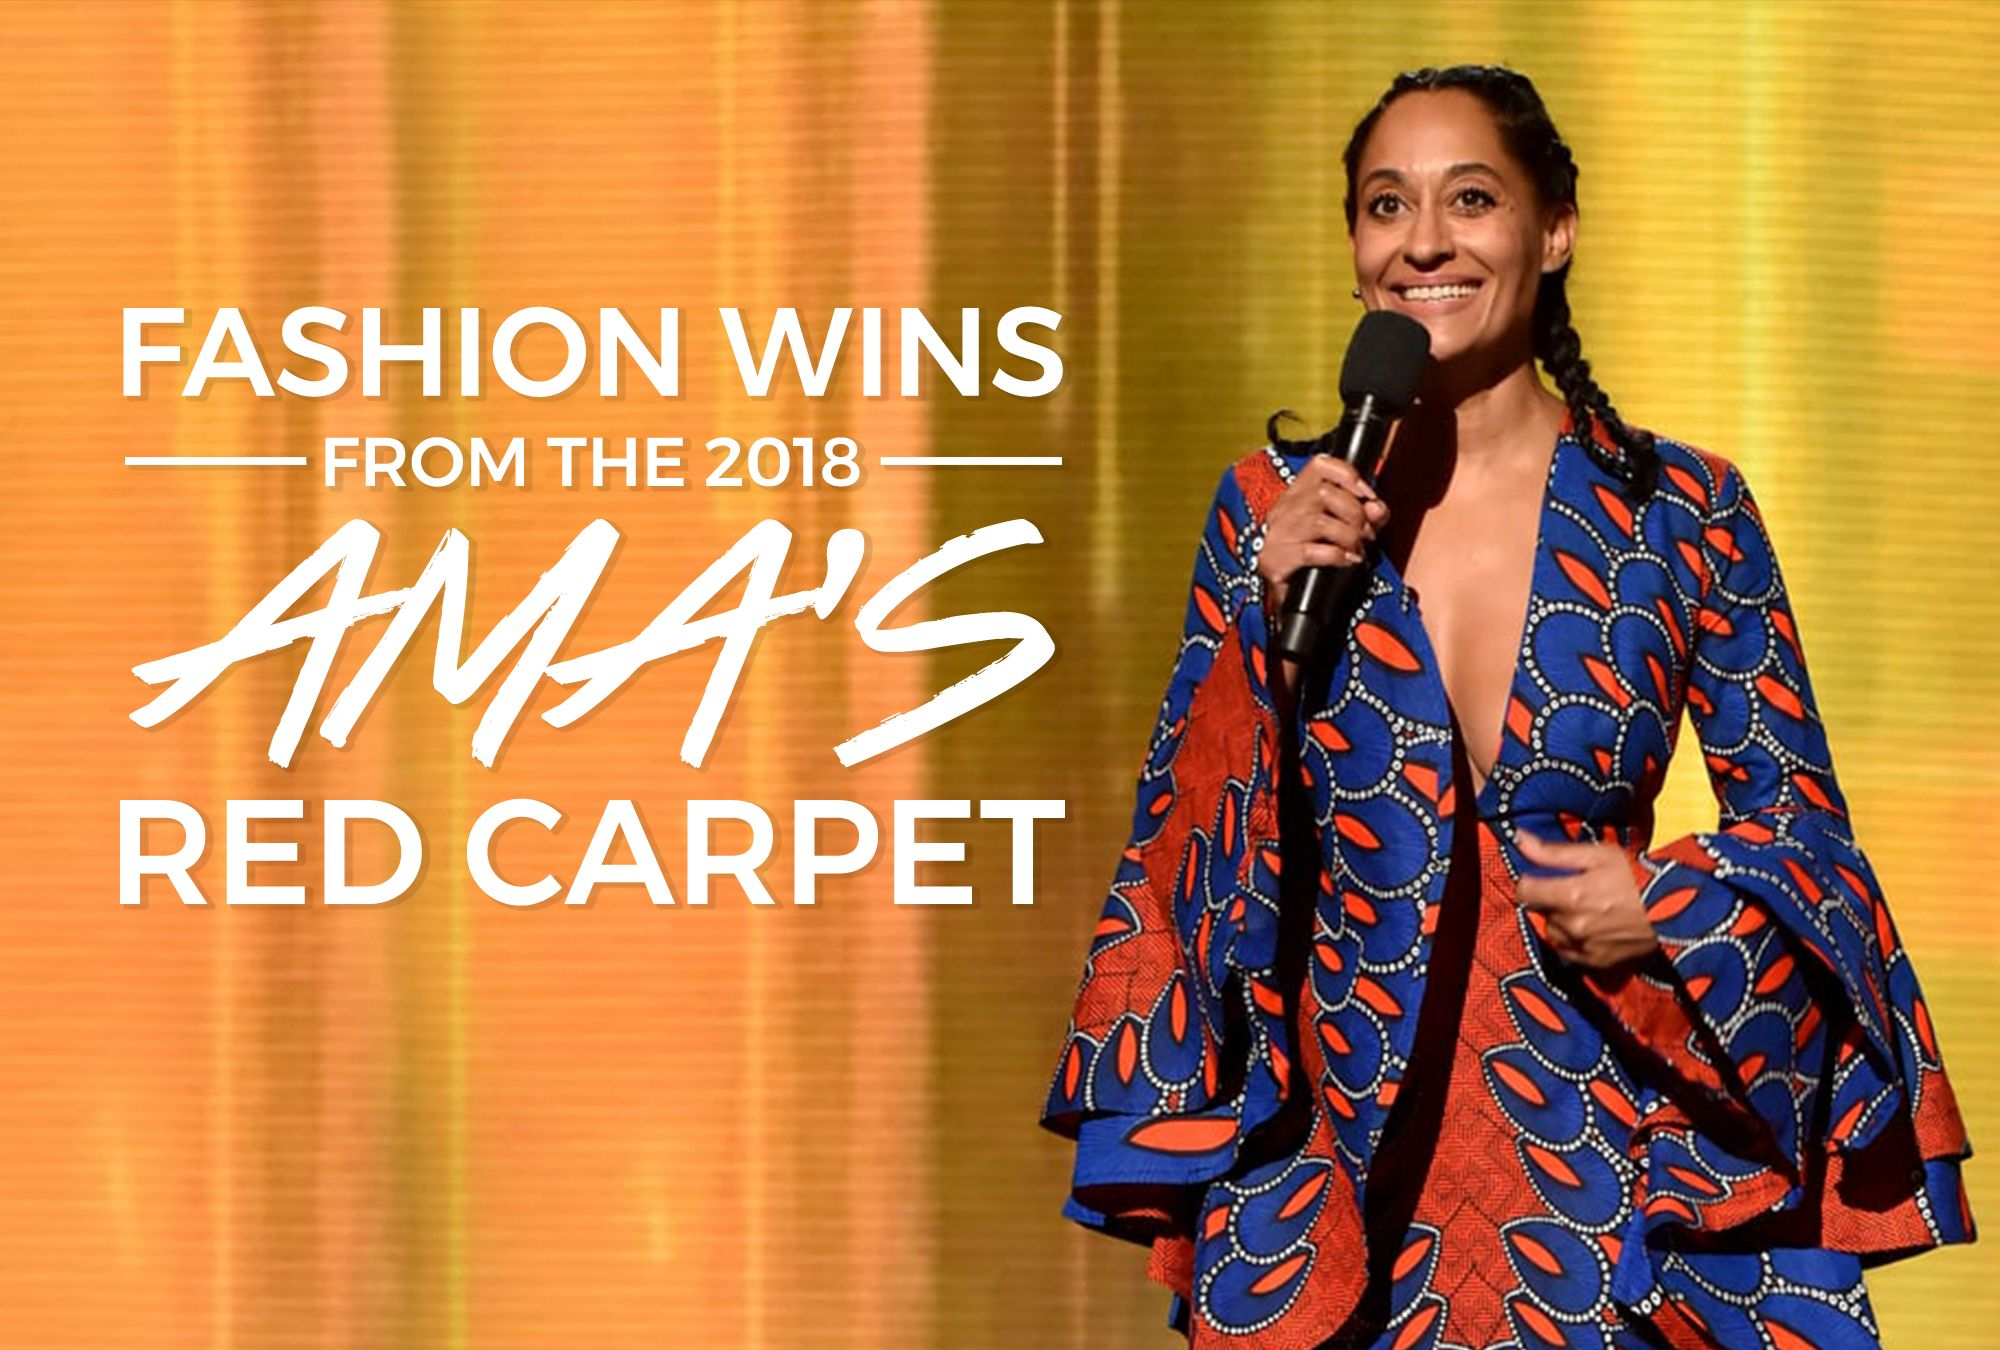 Fashion Wins from The 2018 AMA's Red Carpet